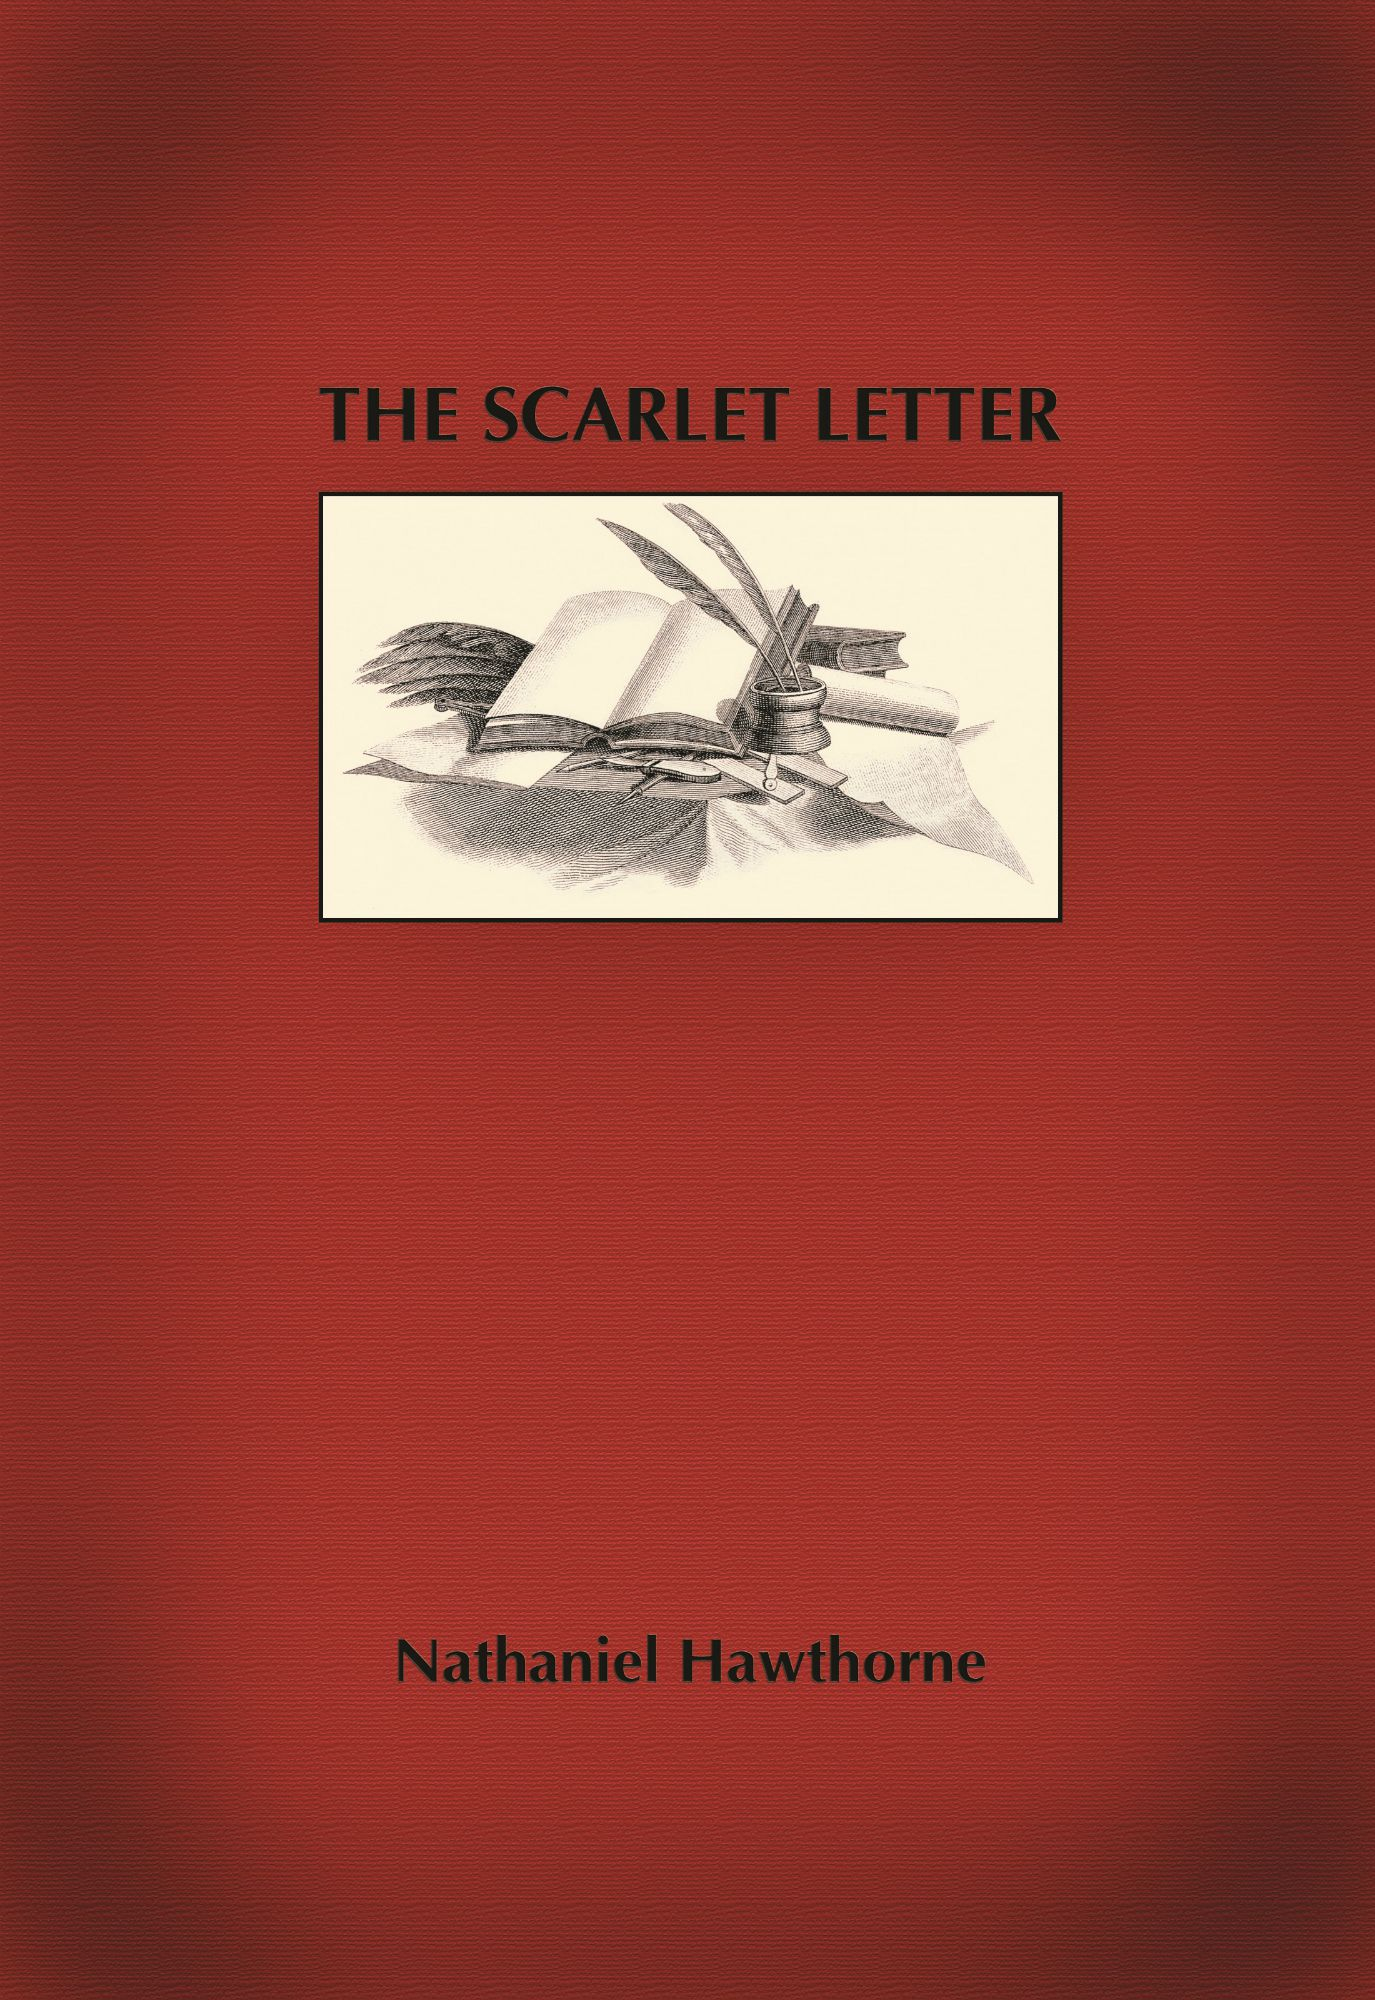 the scarlett letter by nathaniel hawthorne essay Read this english essay and over 88,000 other research documents nathaniel hawthorne's the scarlet letter in nathaniel hawthorne's the scarlet letter, life is centered around a rigid puritan society in which one is unable.